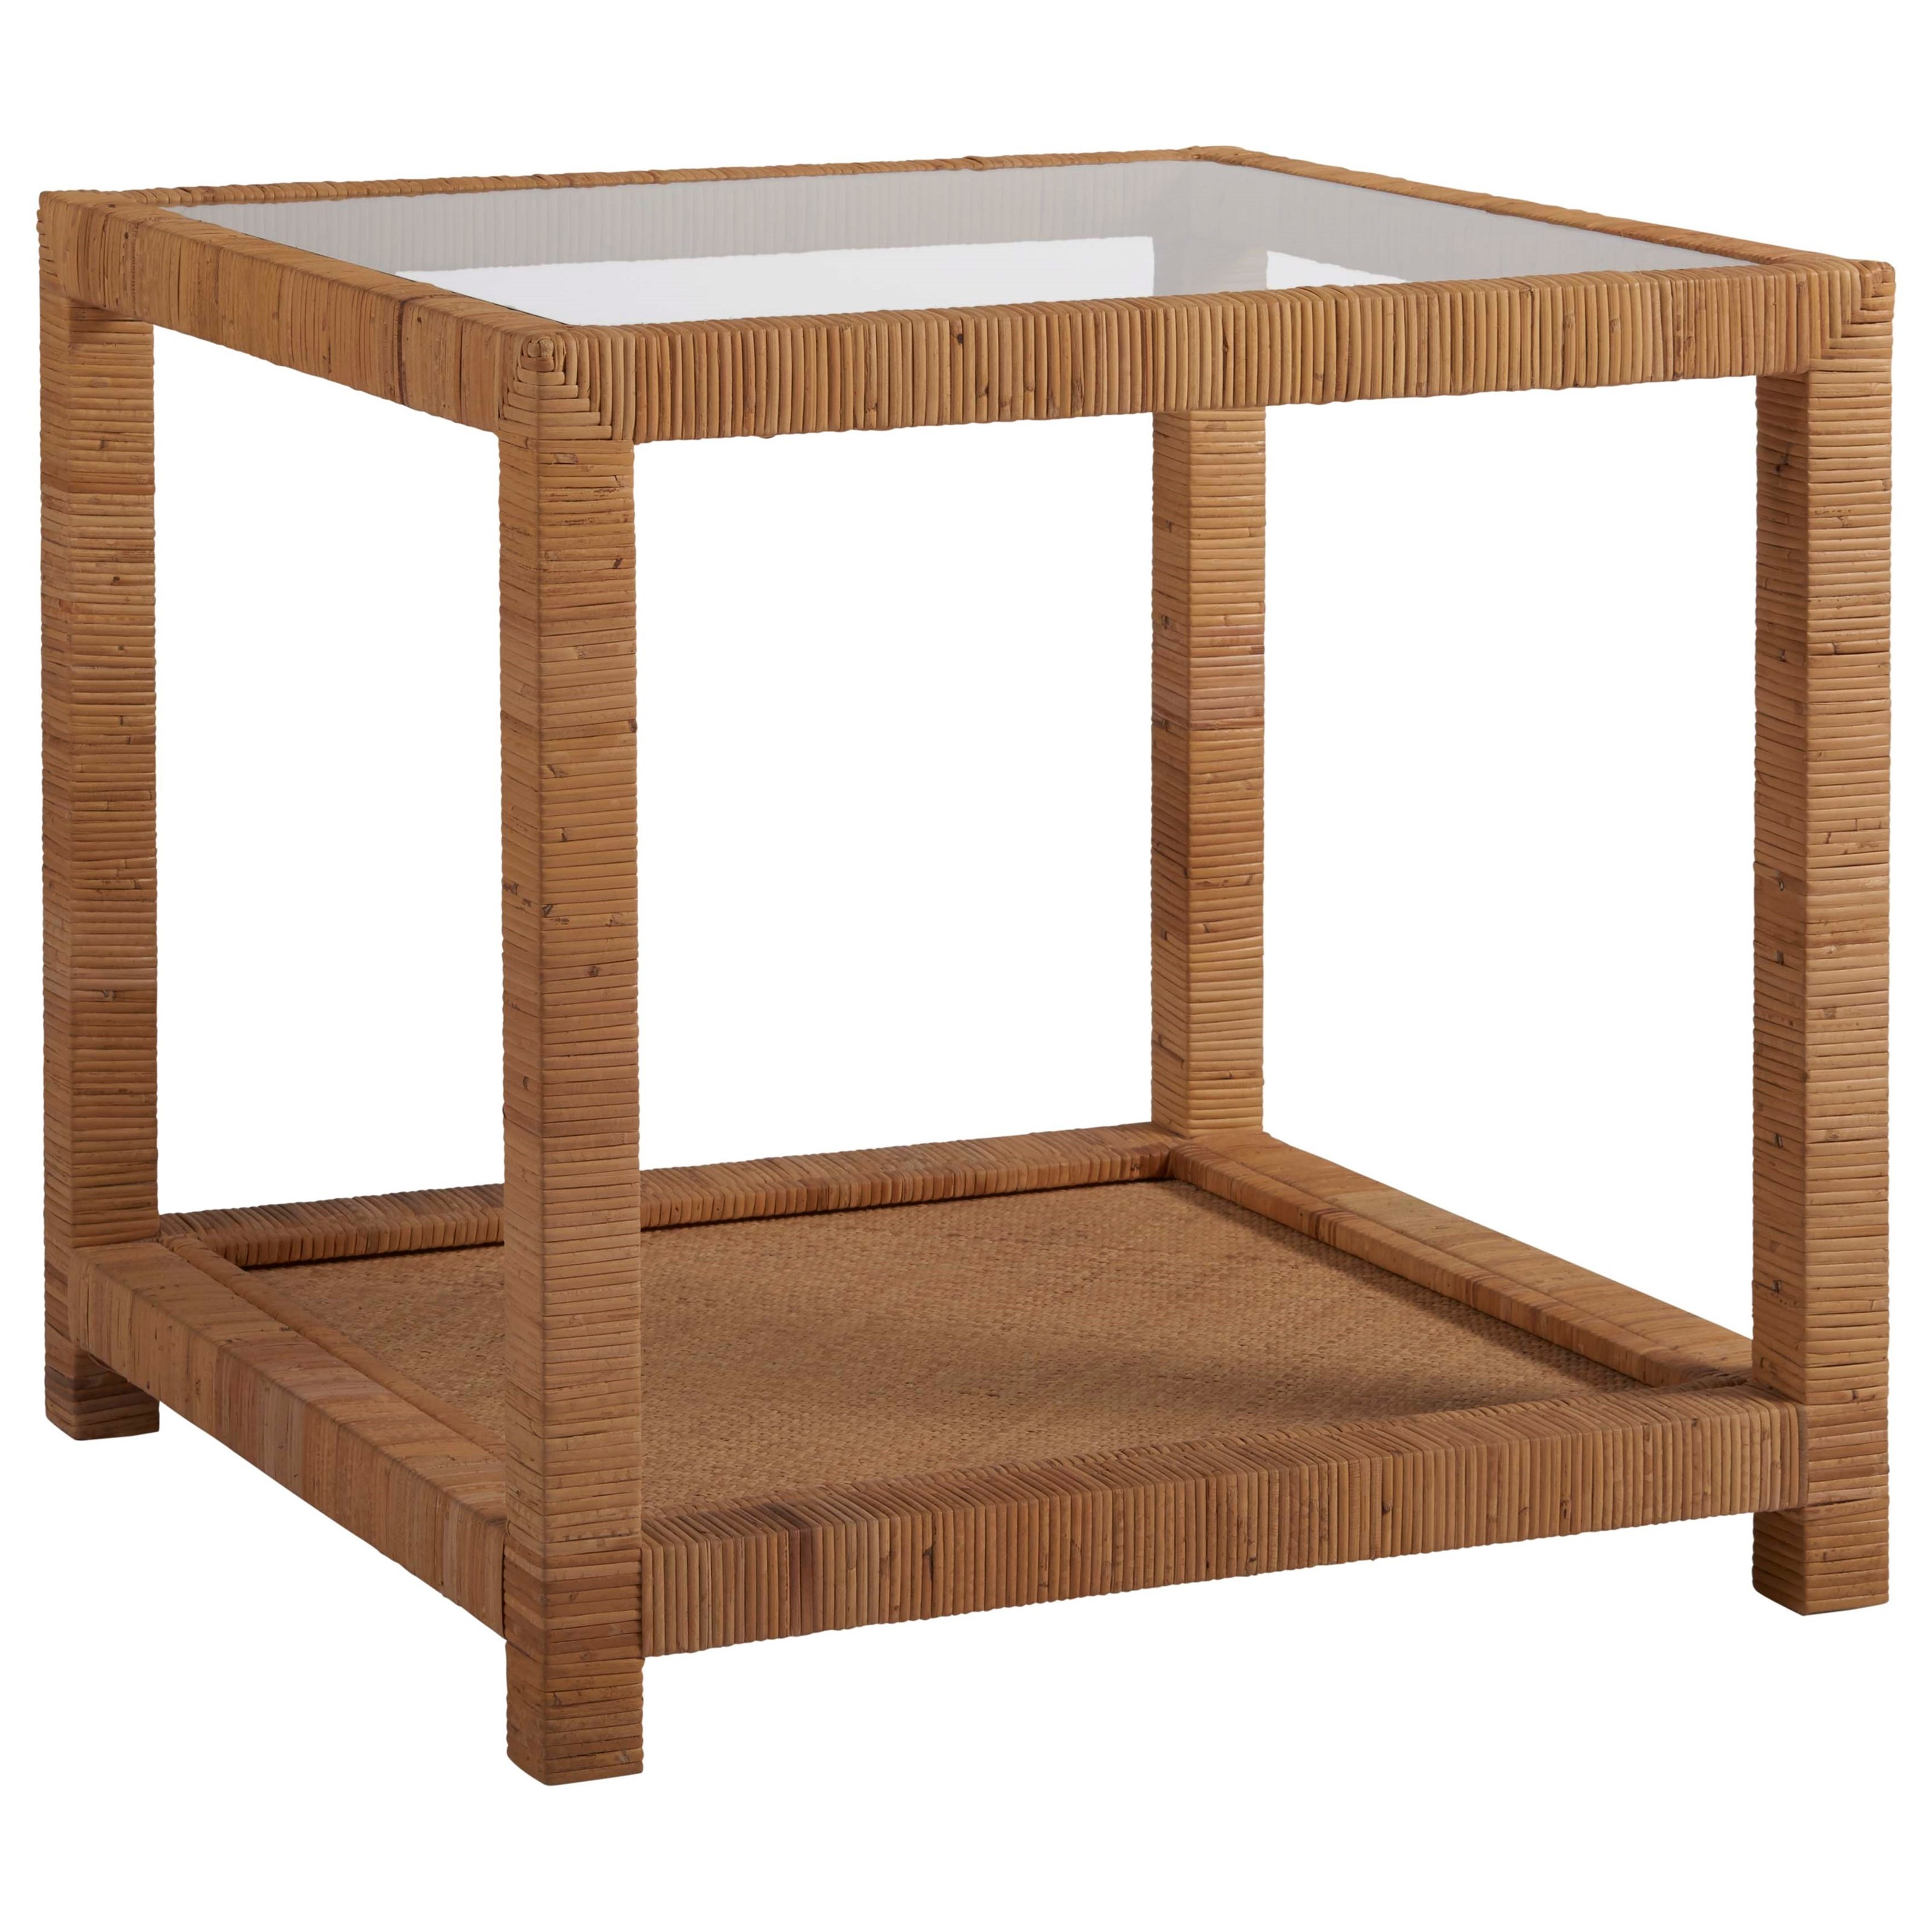 Coastal Living Home - Escape End Table by Universal at HomeWorld Furniture